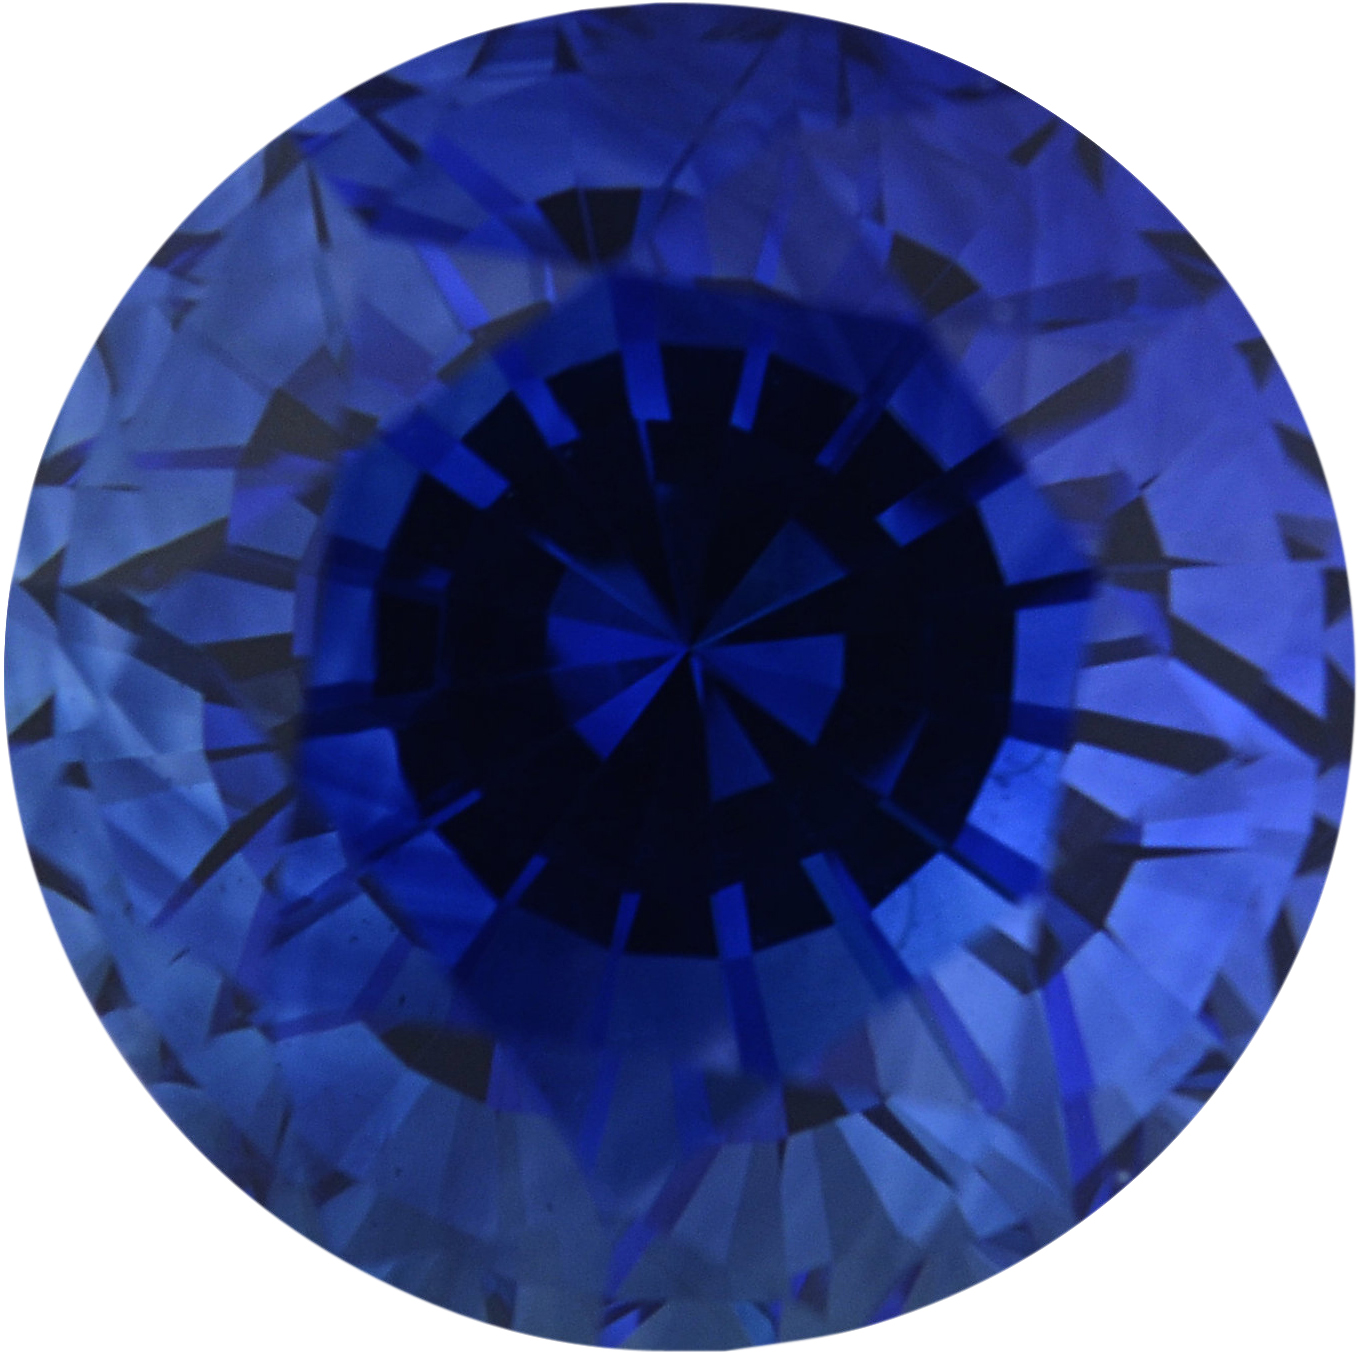 Special Sapphire Loose Gem in Round Cut, Medium Violet Blue, 6.89 mm, 1.9 Carats